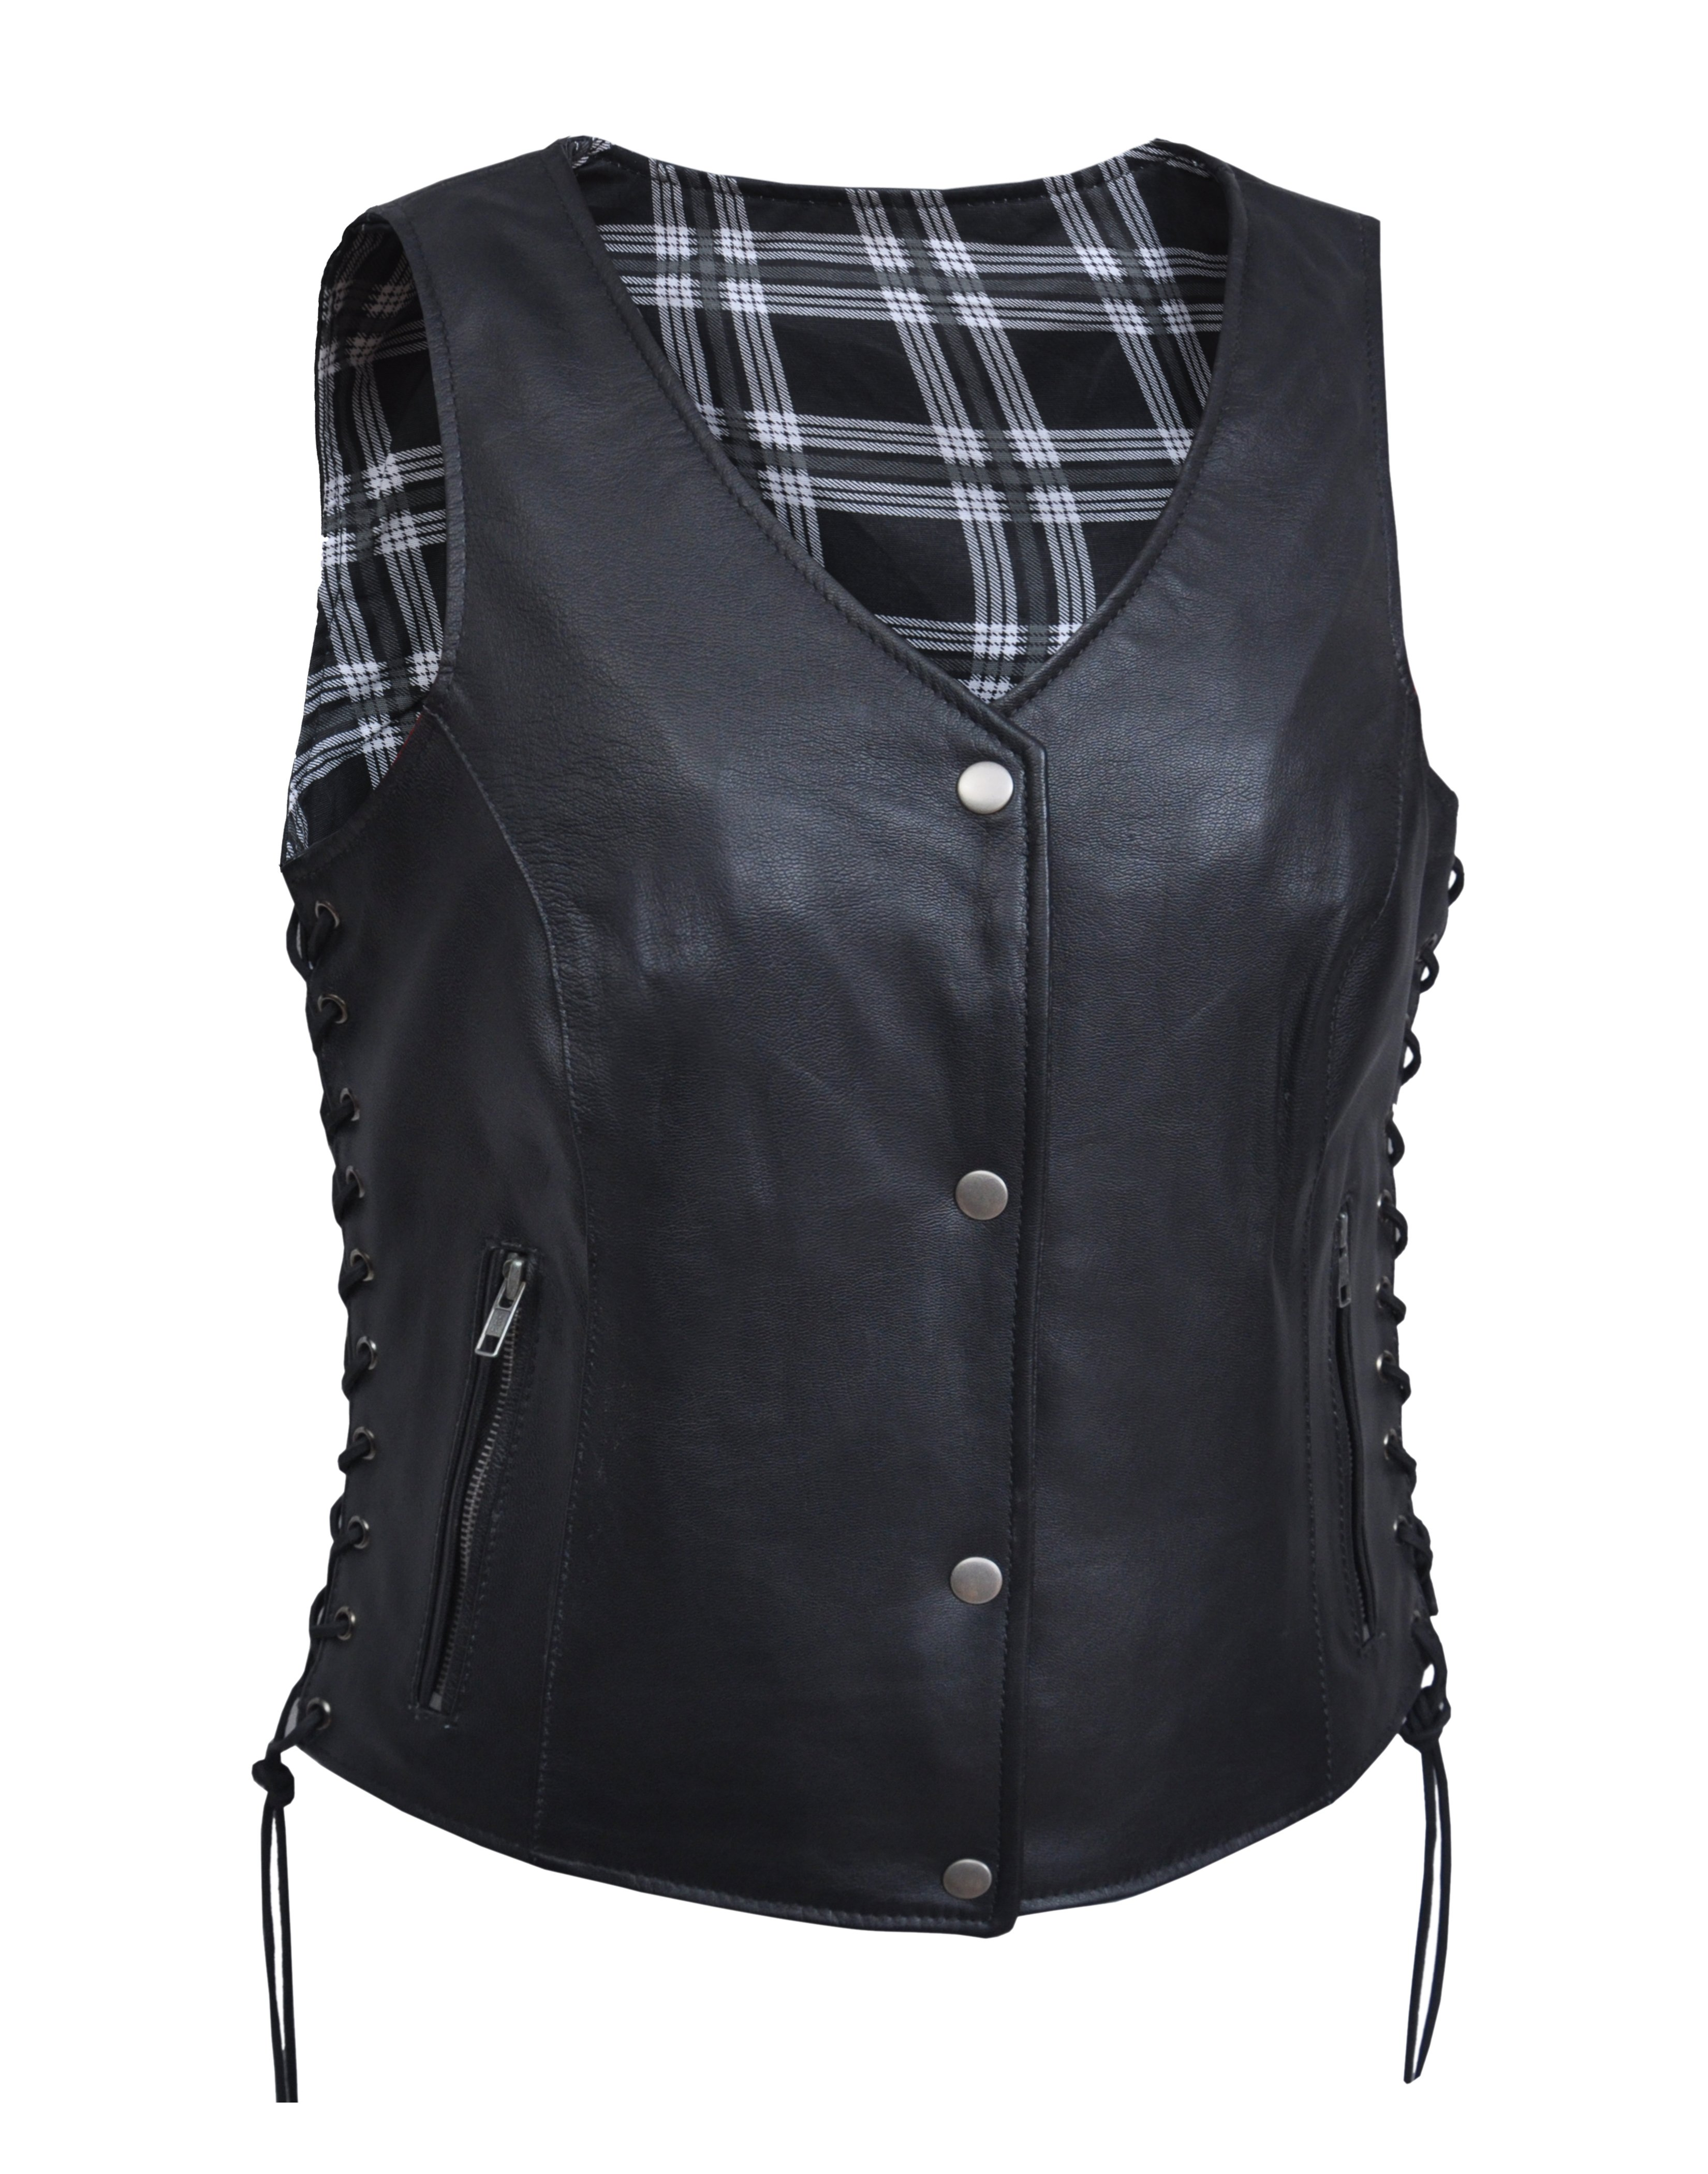 Women's Leather Vest with Black and White Flannel Liner - Ladies Vests - SKU 6895-00-UN